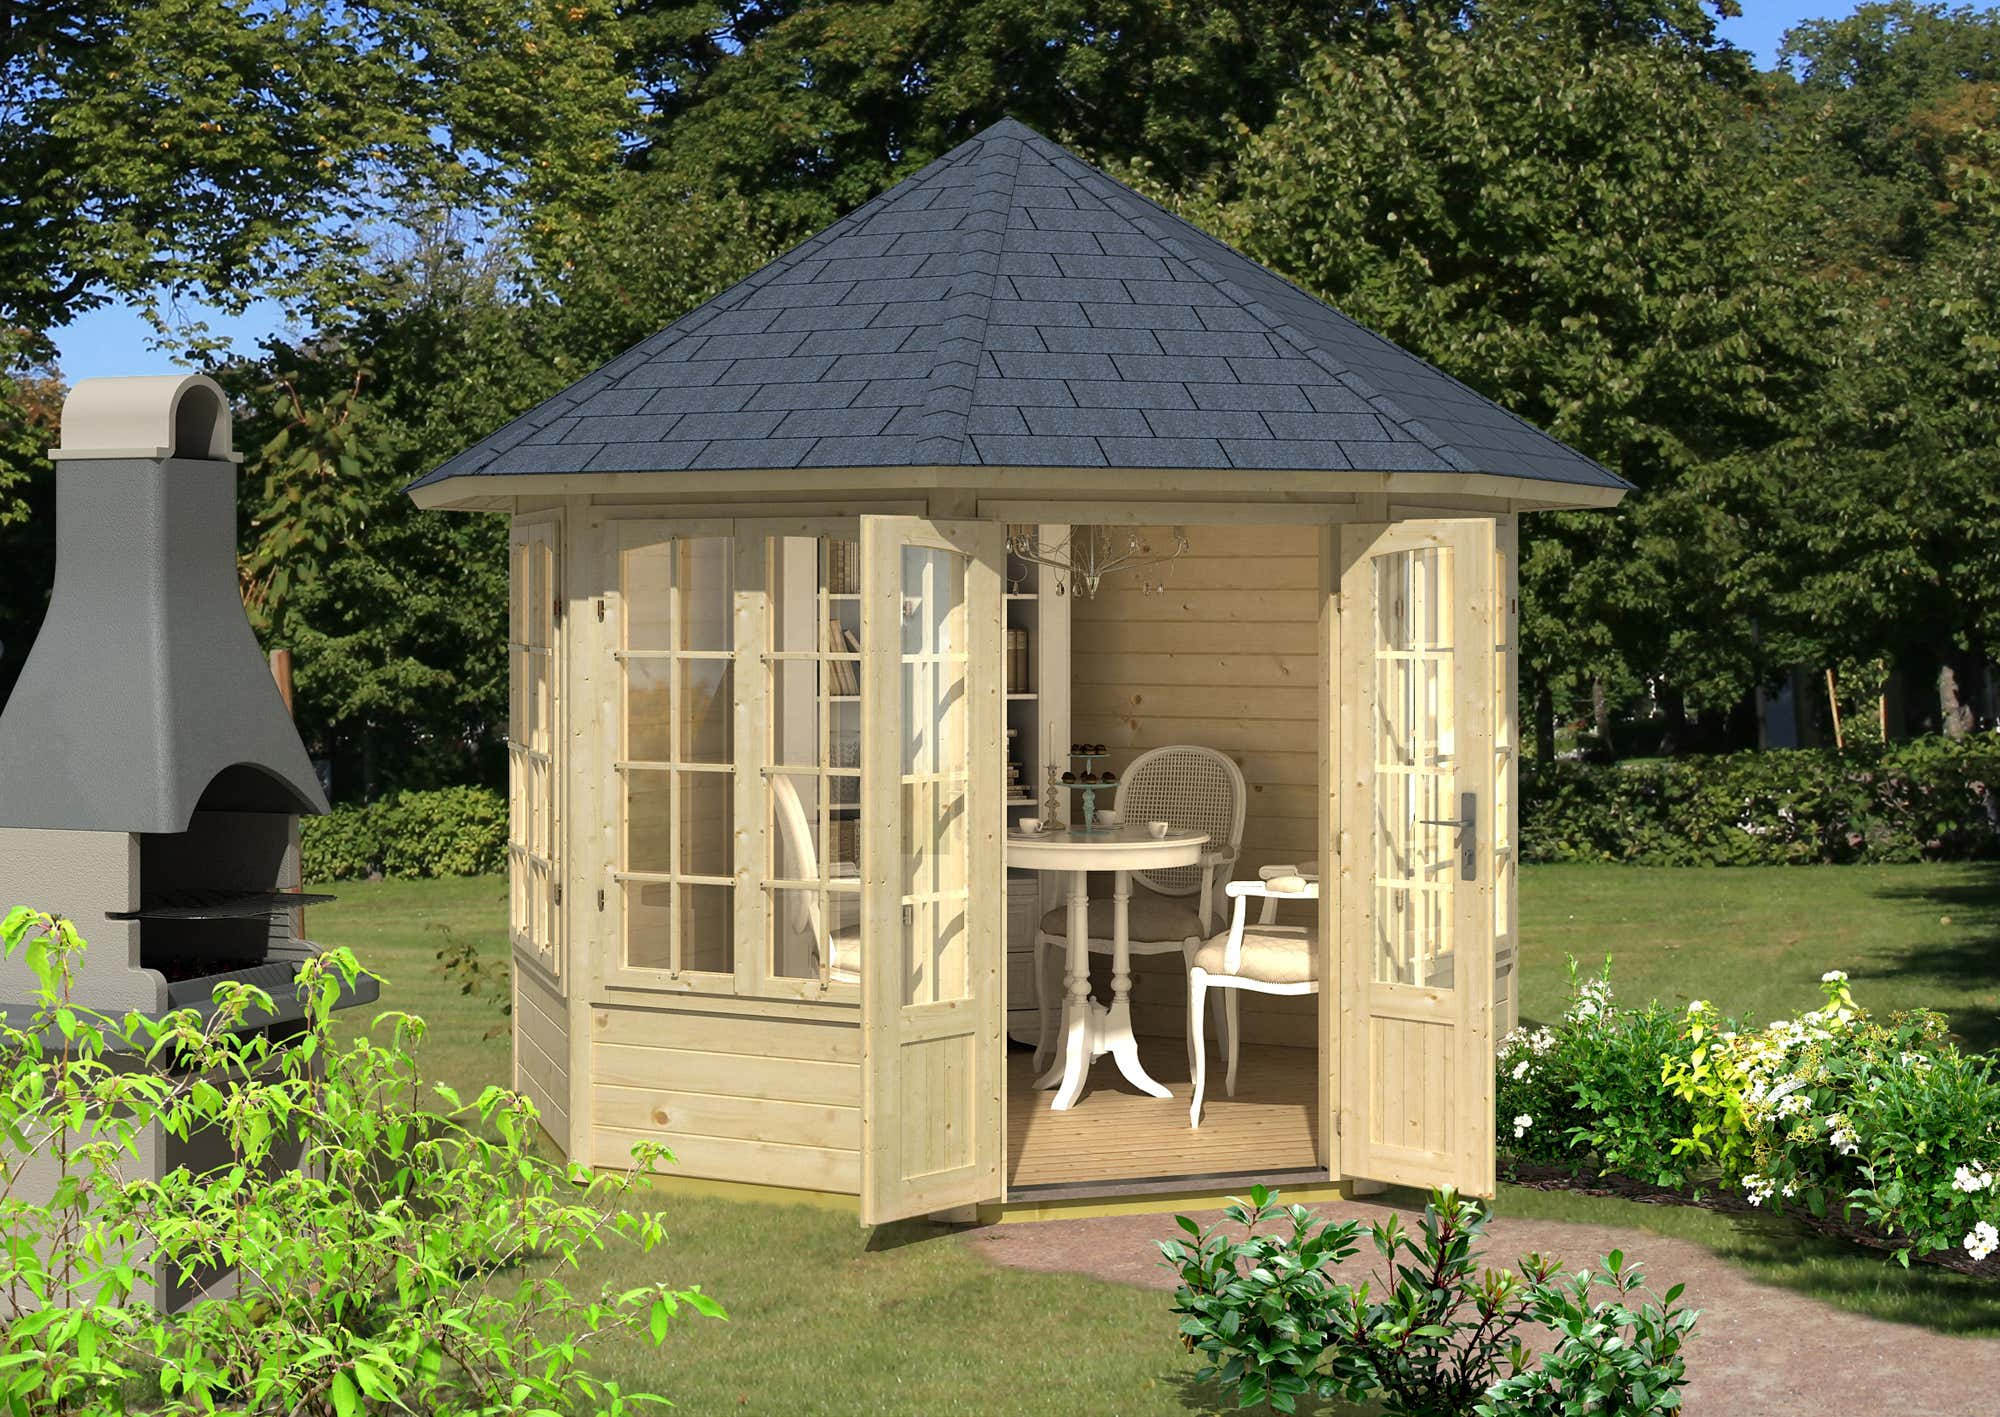 gartenpavillon modell louise 40 mit vier fenstern 122420 a z gartenhaus gmbh. Black Bedroom Furniture Sets. Home Design Ideas